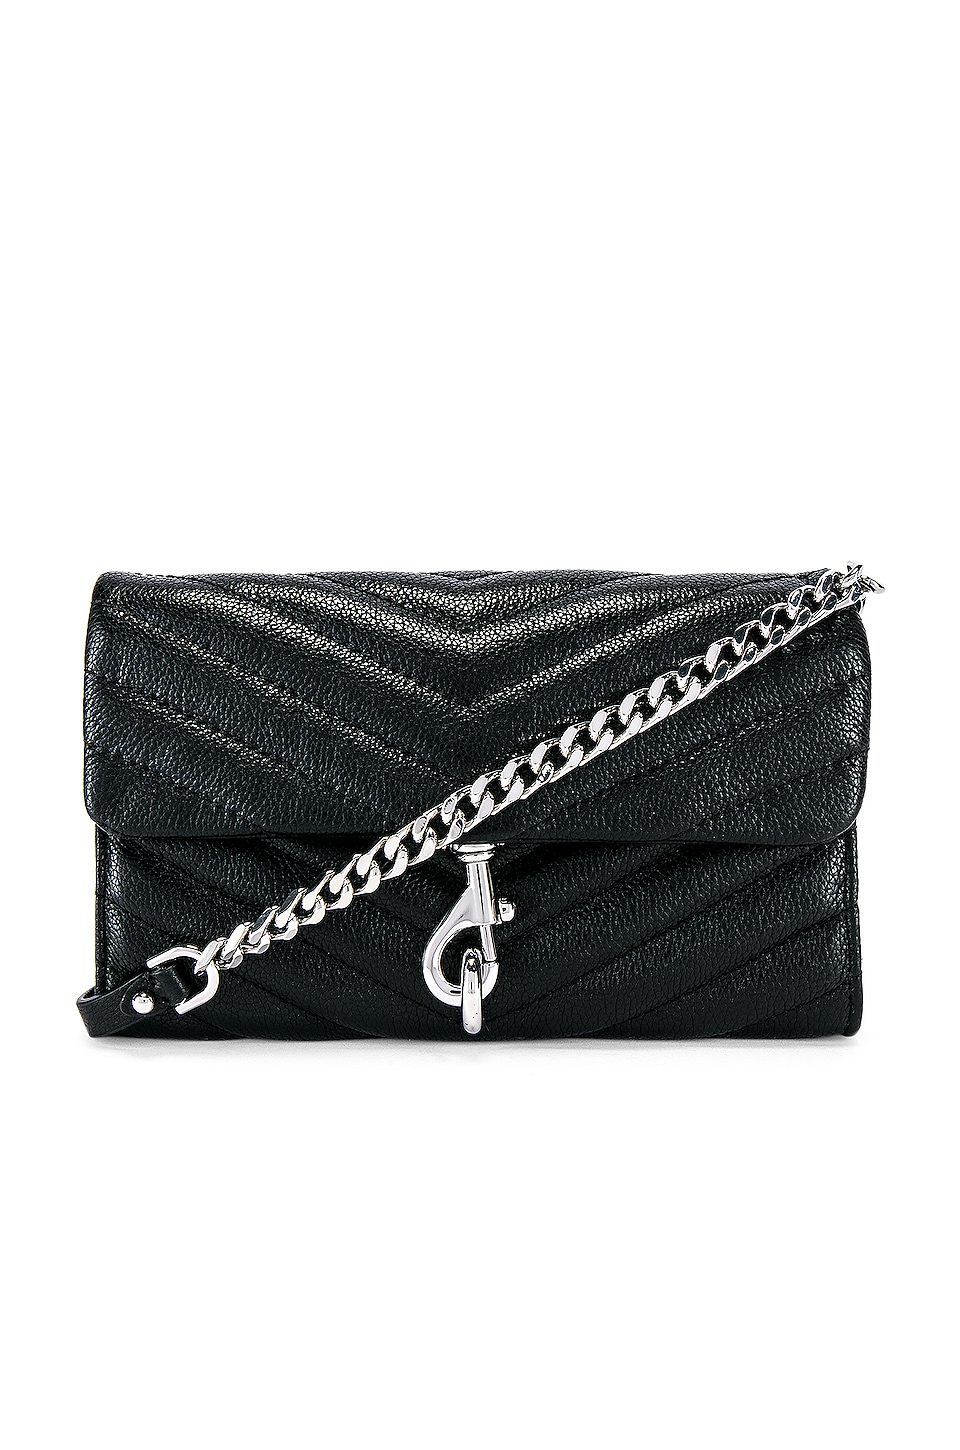 Rebecca Minkoff Edie Wallet On Chain Bag in Black